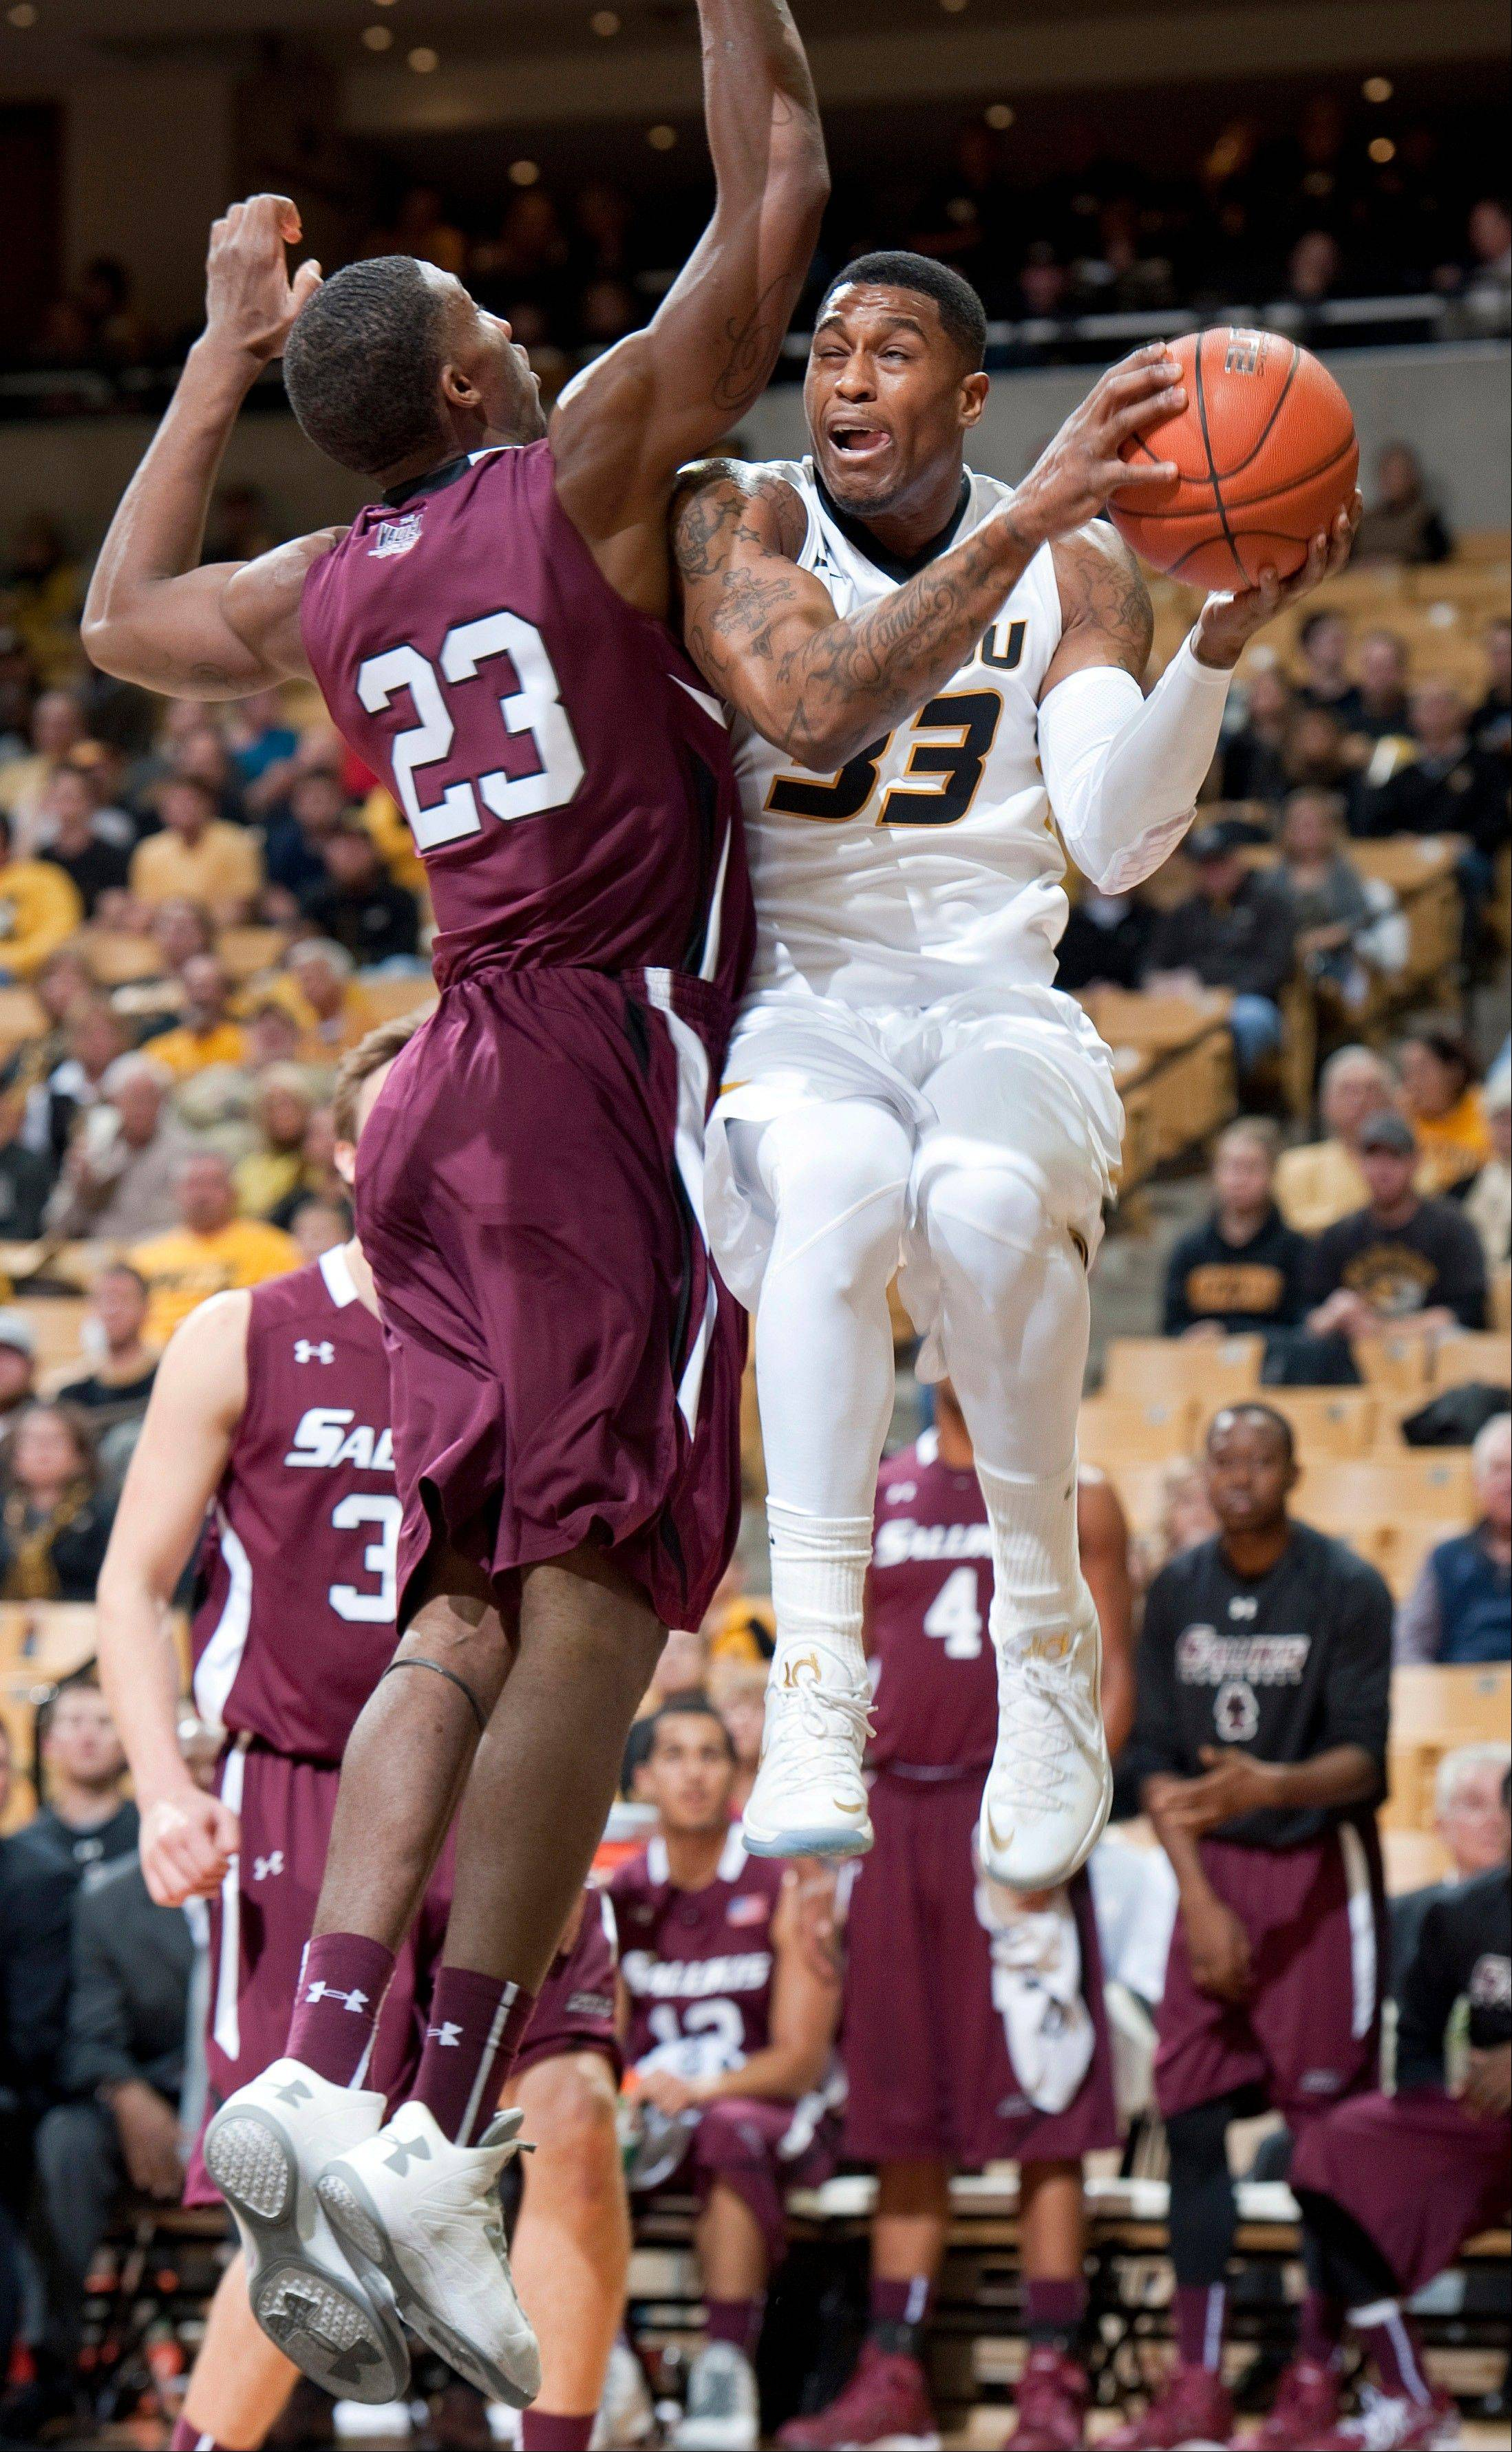 Missouri�s Earnest Ross, right, is fouled by Southern Illinois� Bola Olaniyan as he shoots during the first half of Tuesday�s game in Columbia, Mo.